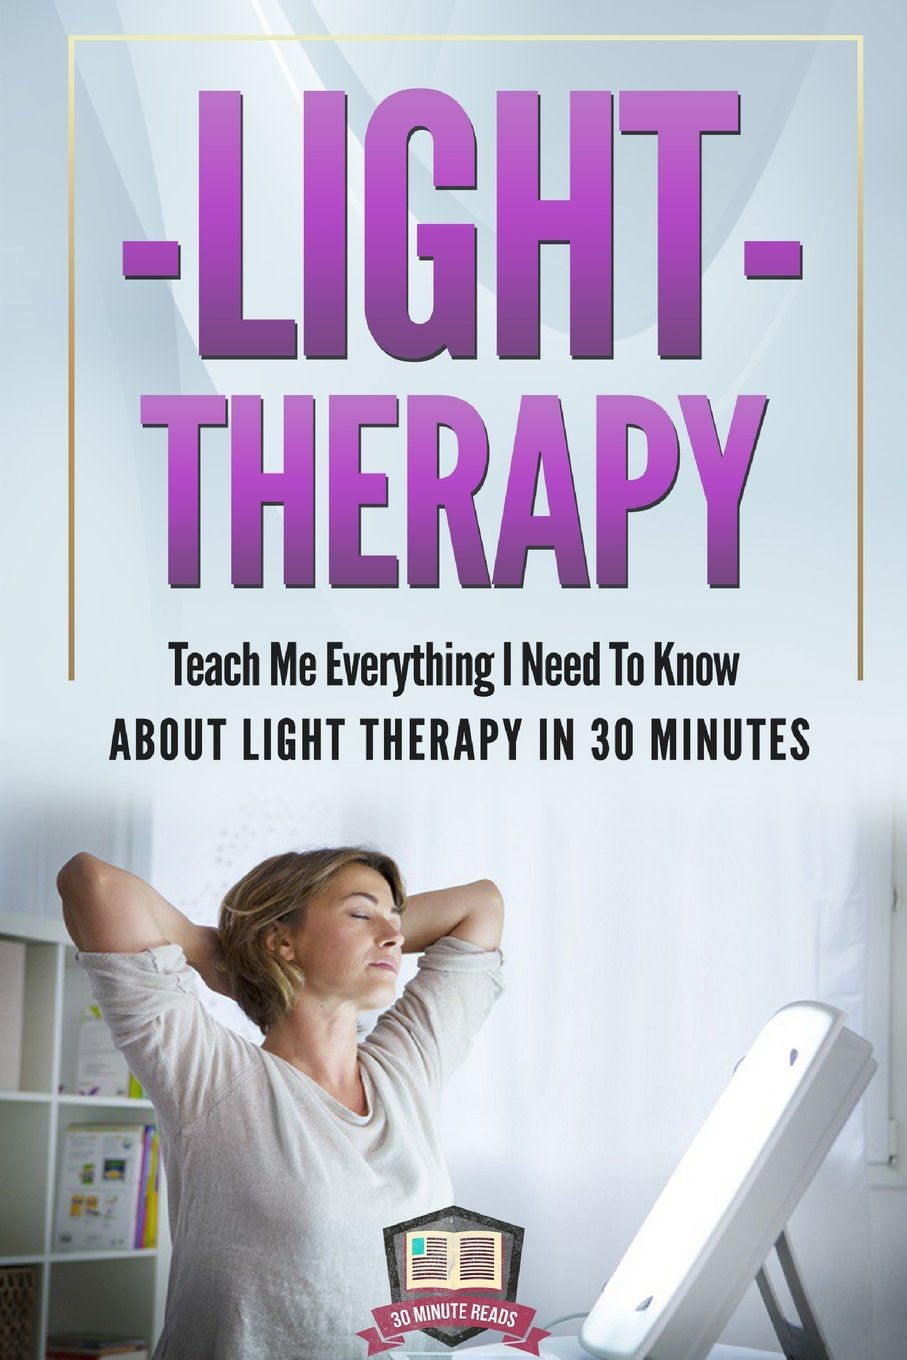 Light Therapy: Teach Me Everything I Need To Know About Light